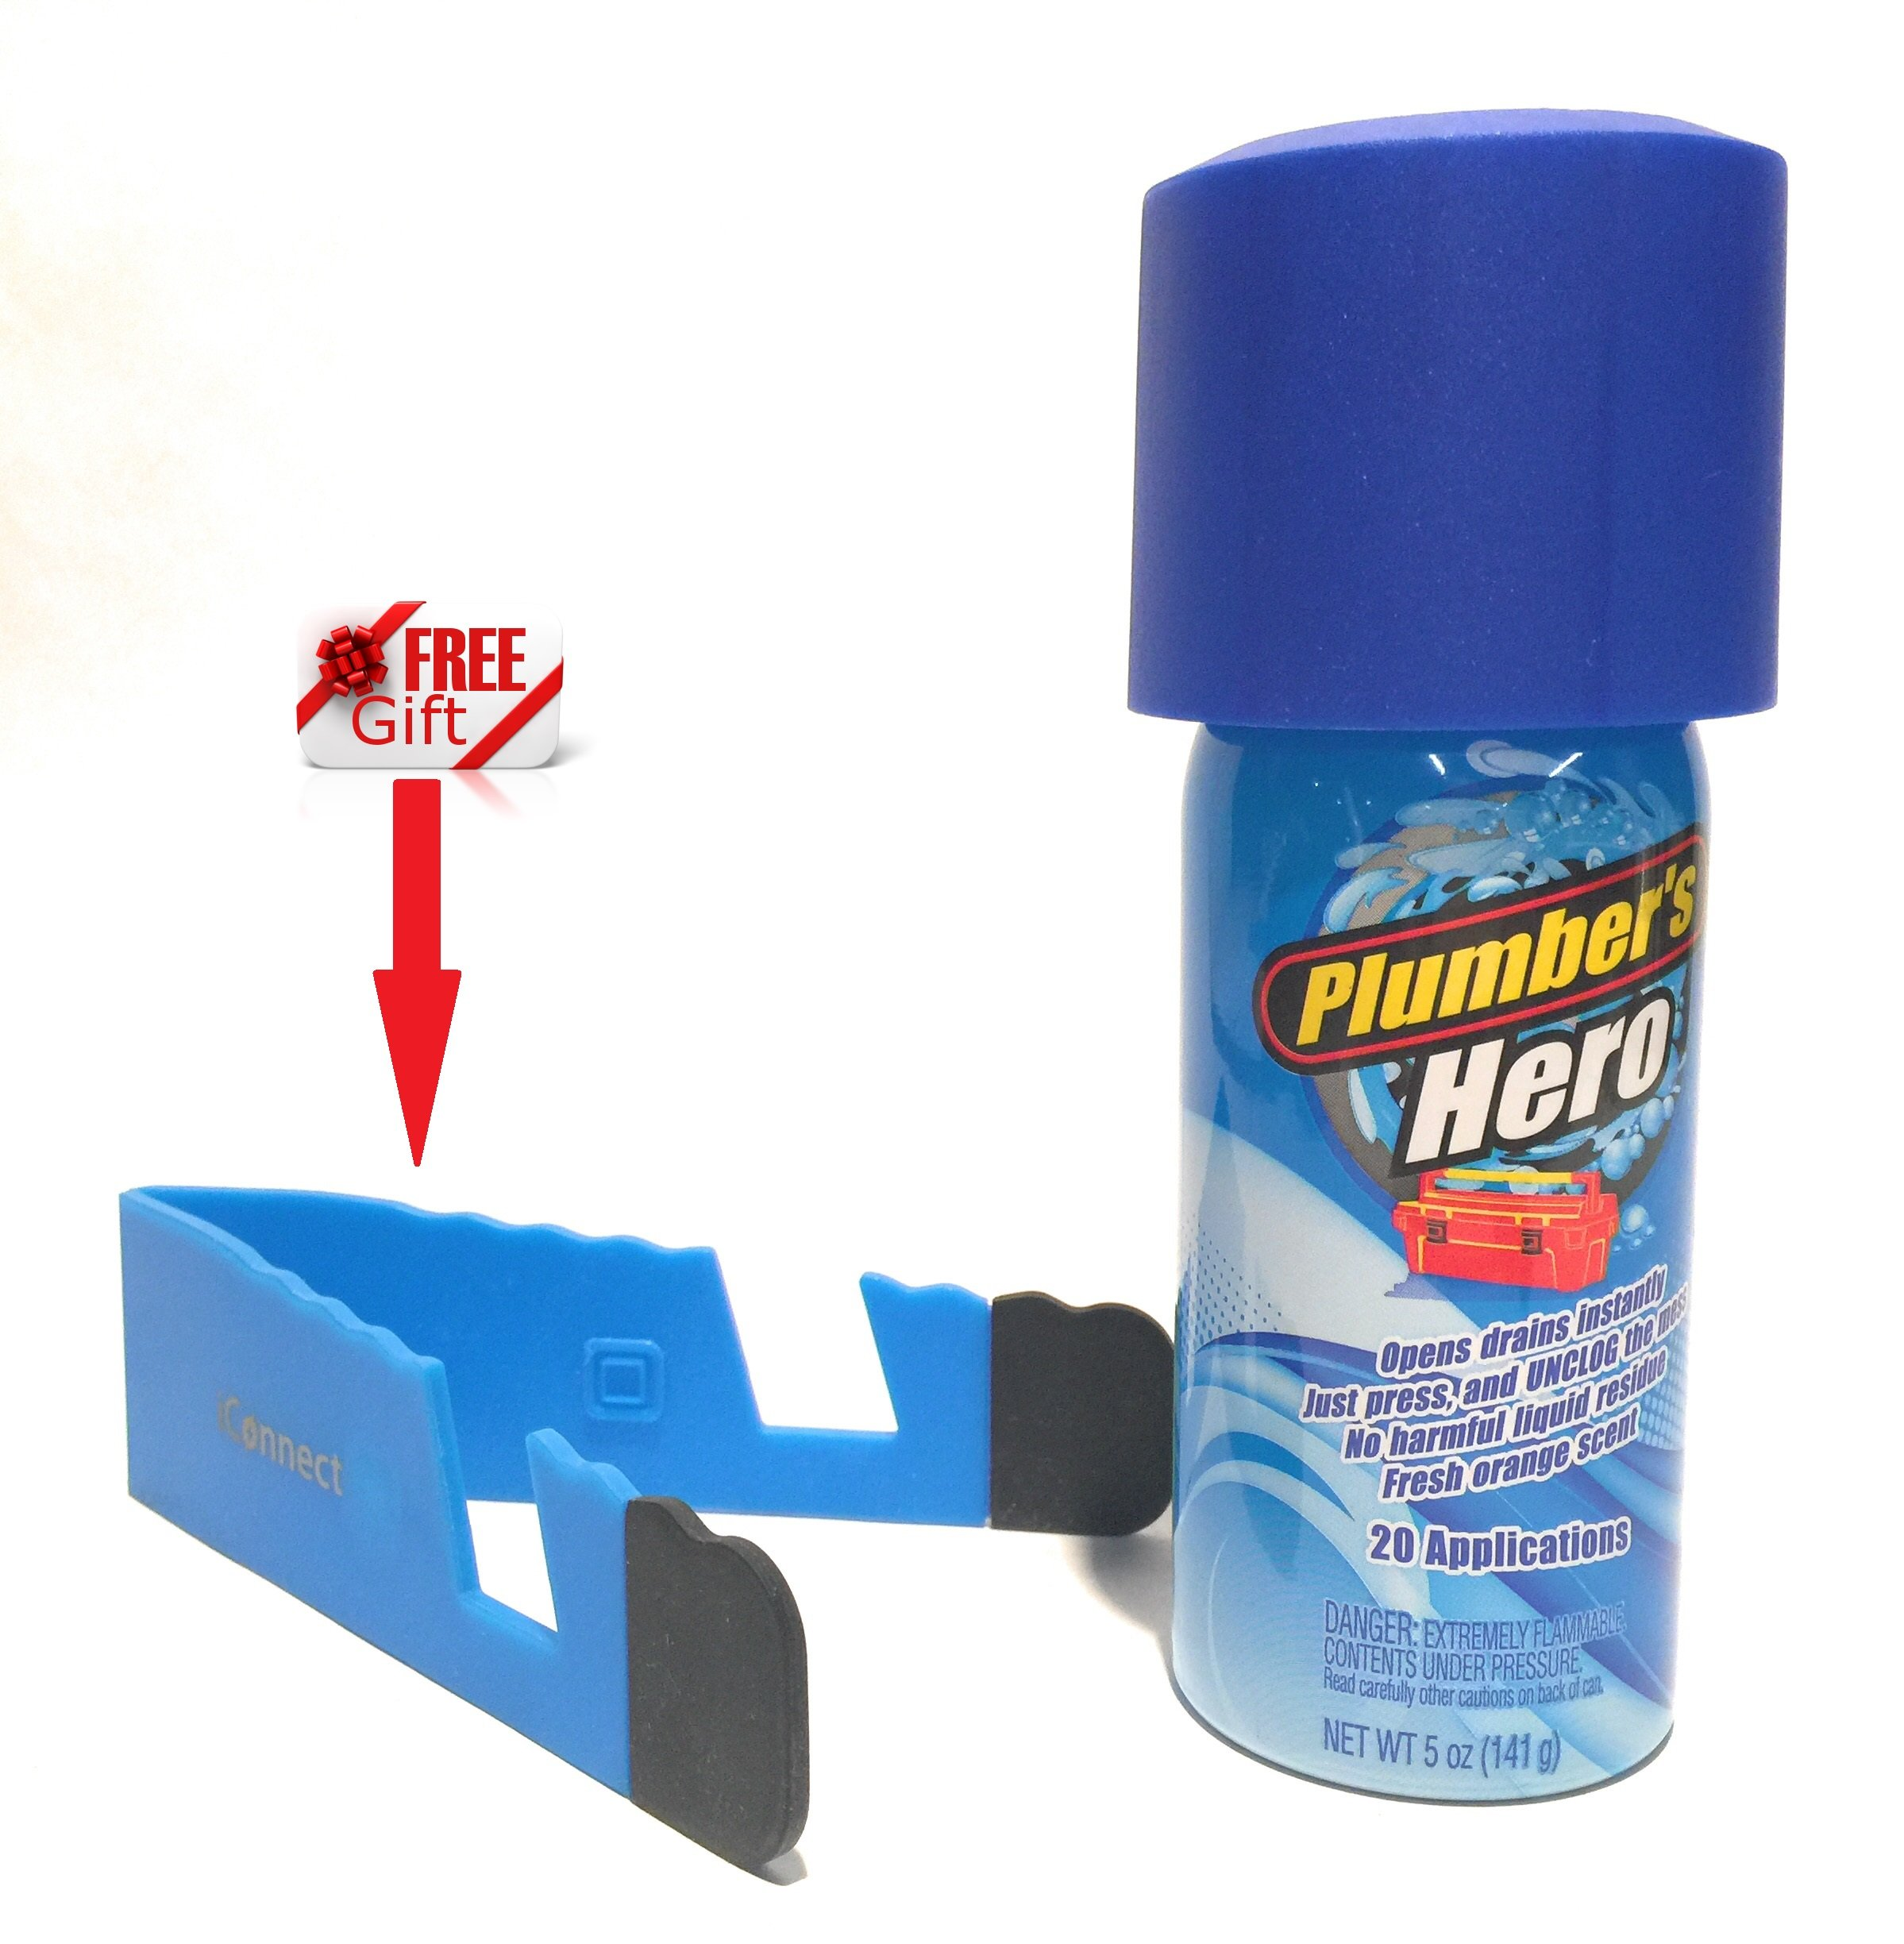 Plumbers Hero REFILL - Unclog Drains Instantly - 20 Uses in Every Can